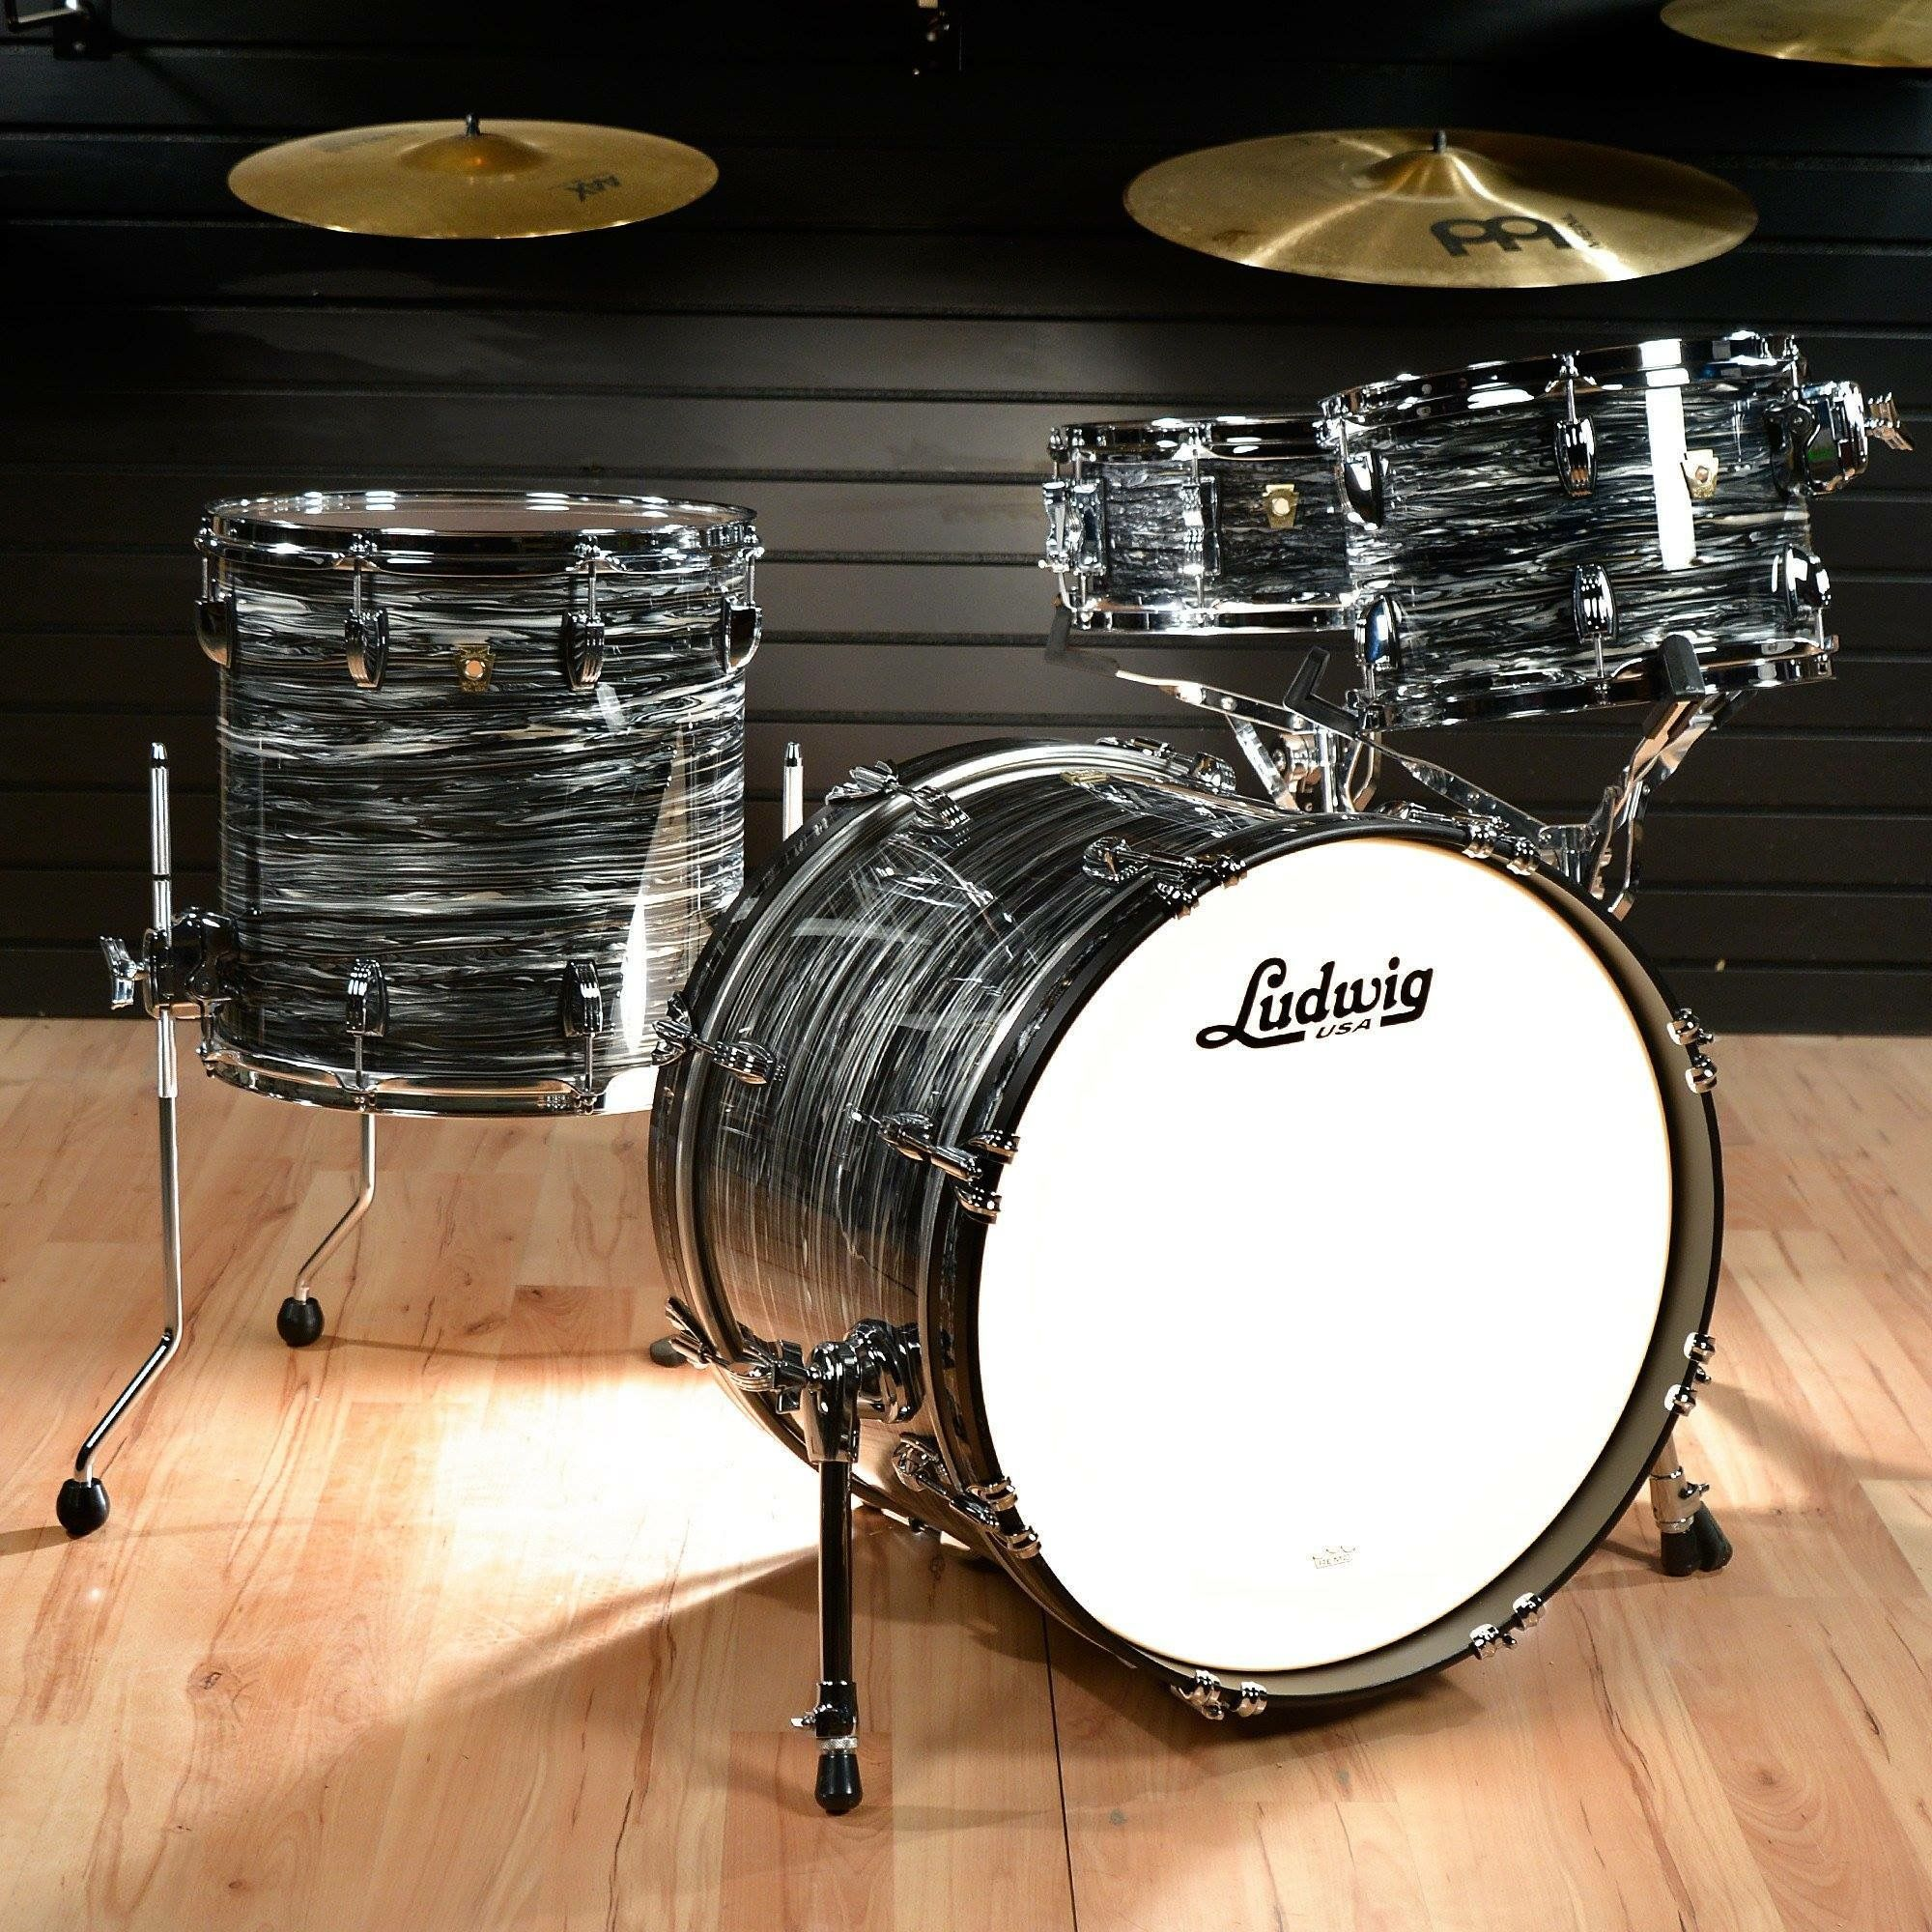 ludwig the art of drums and percussion in 2019 acoustic drum drums acoustic drum set. Black Bedroom Furniture Sets. Home Design Ideas